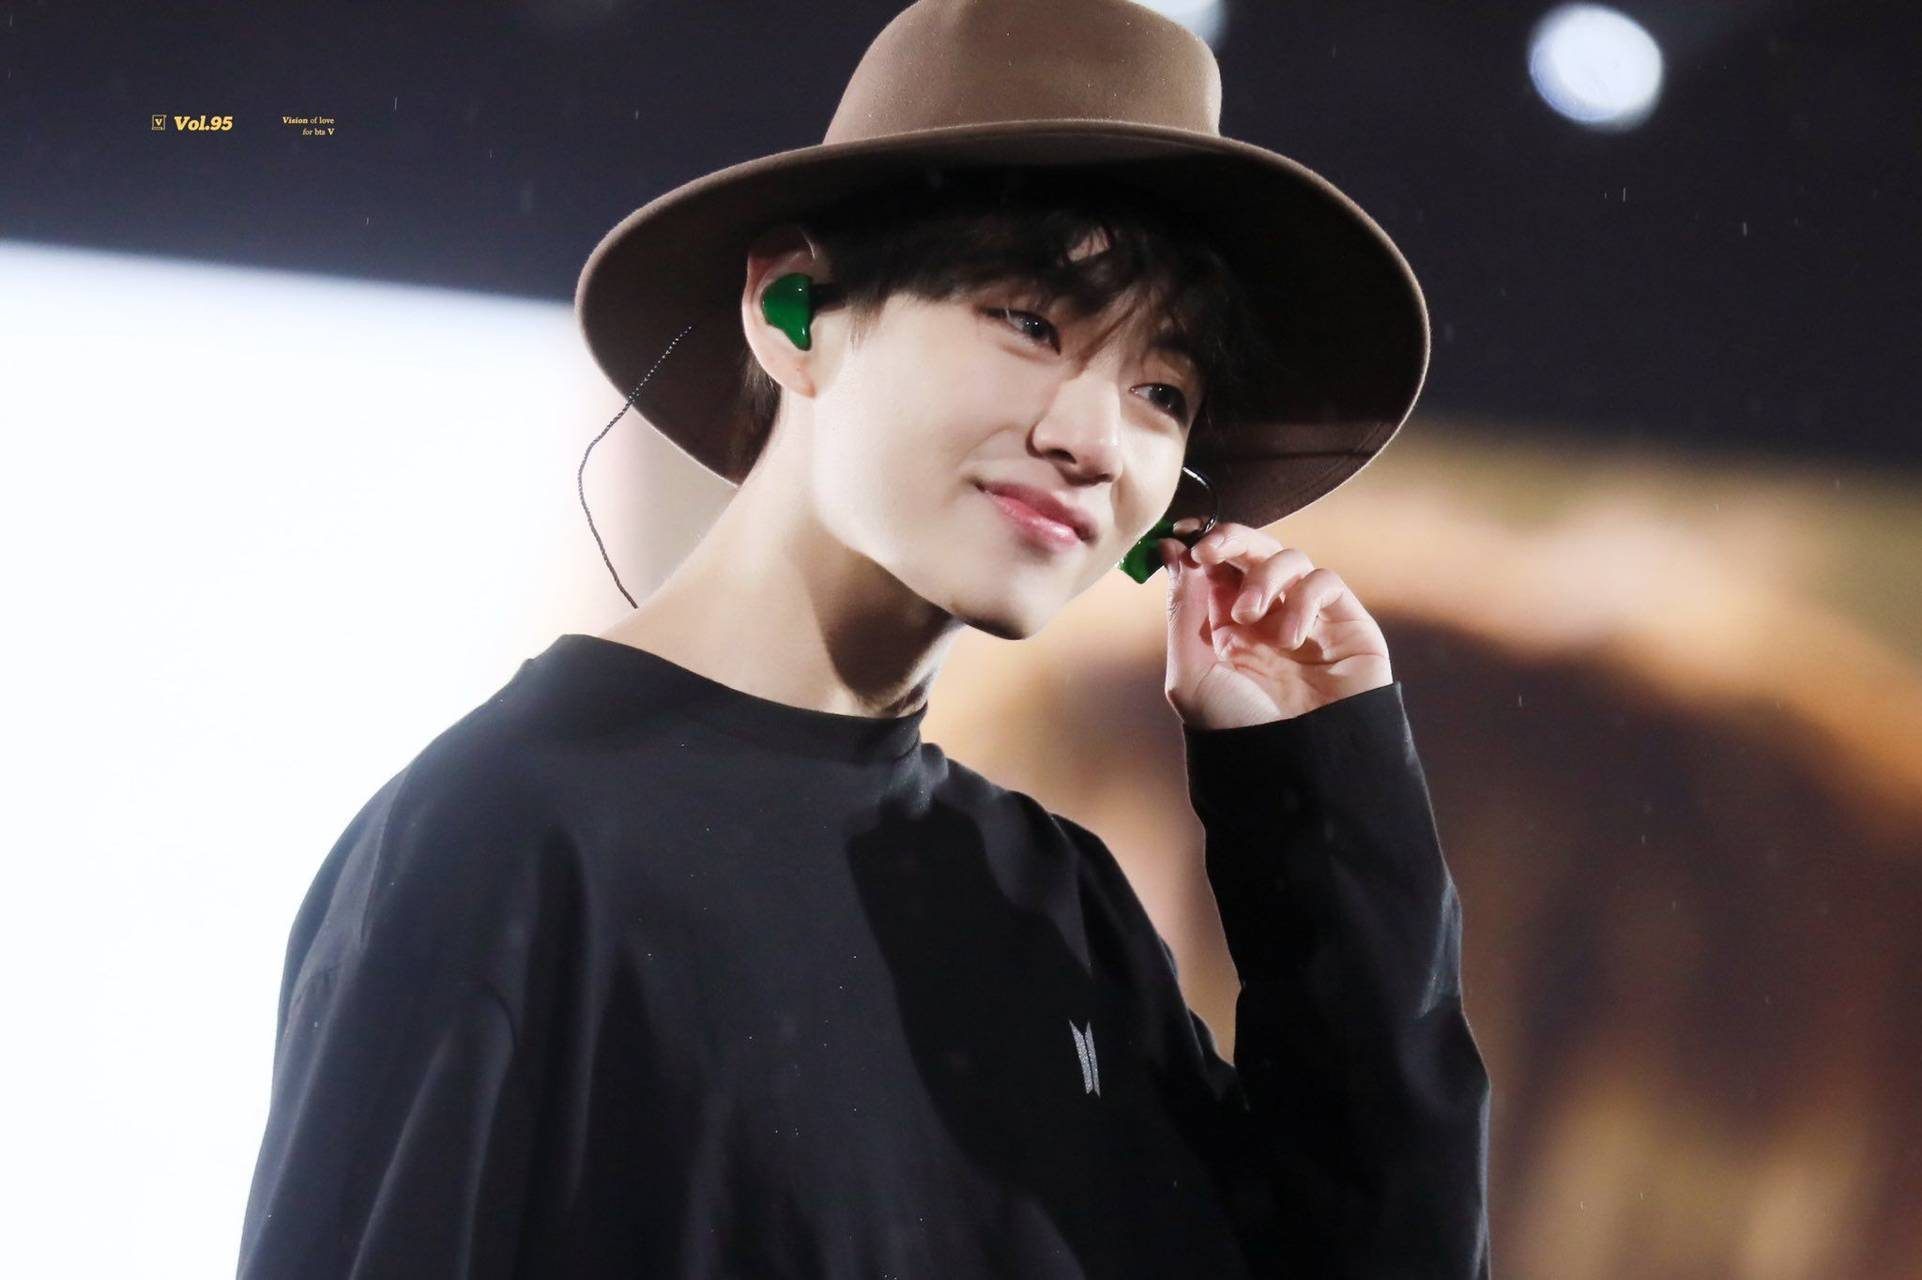 Taehyung with hat